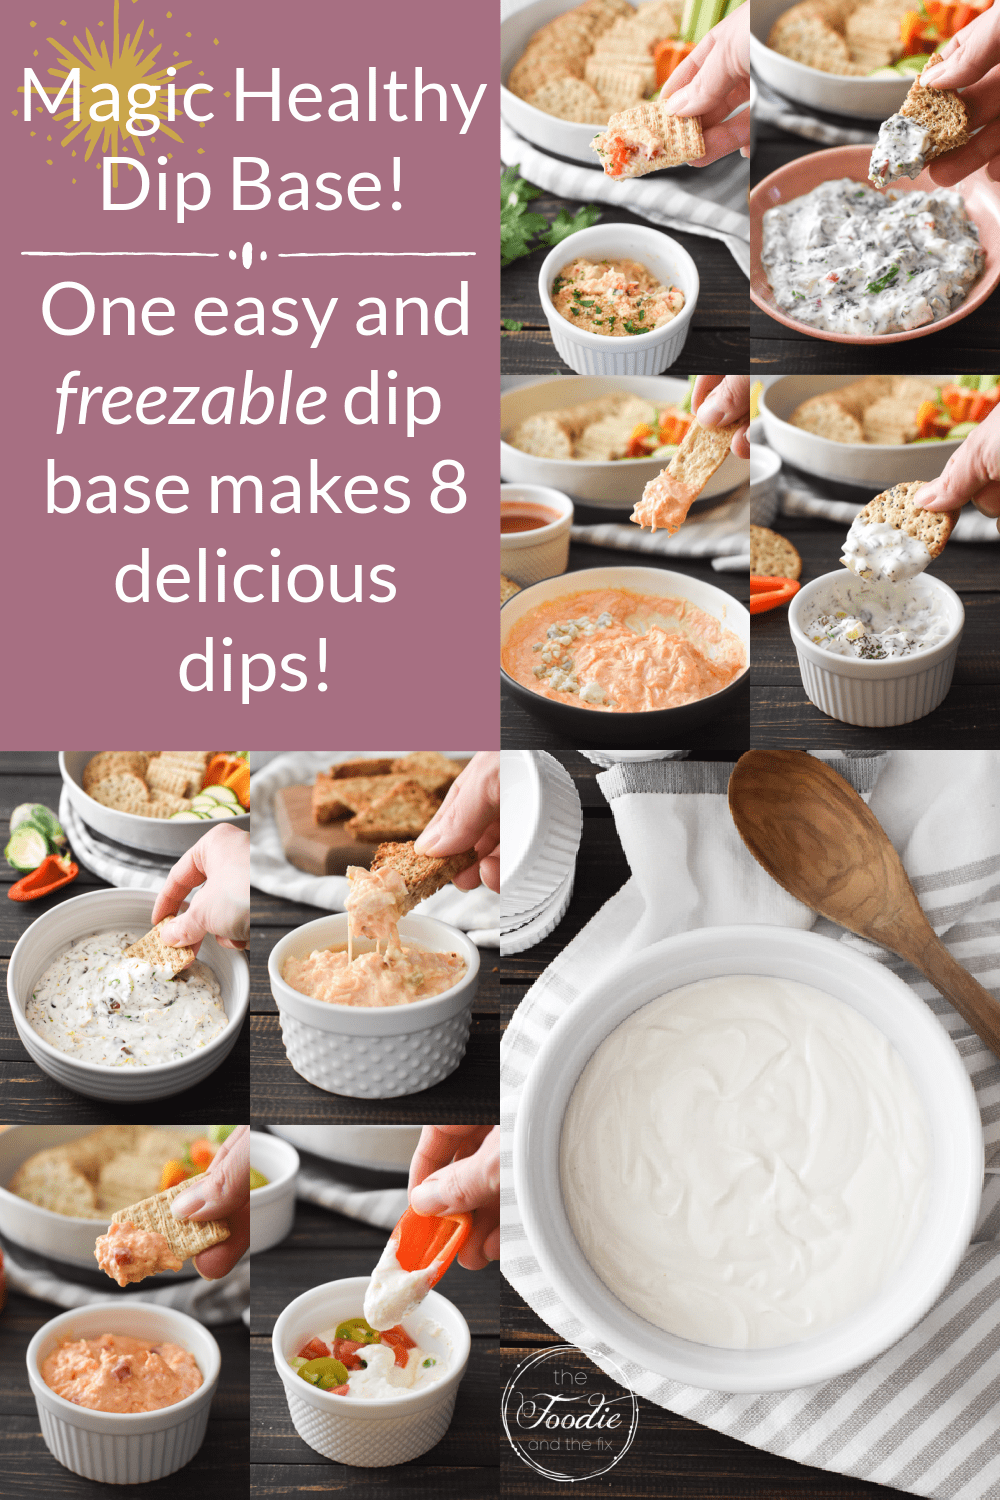 This magic healthy dip base gives you endless add-in options for making any delicious dip that you dream up! It's also gluten-free, quick and easy to make, and you can keep portions in your freezer for last-minute snacking! #21dayfix #UPF #weightwatchers #snacking #holiday #christmas #thanksgiving #gameday #healthygameday #glutenfree #kidfriendly #ww #healthy #healthysnack #weightloss